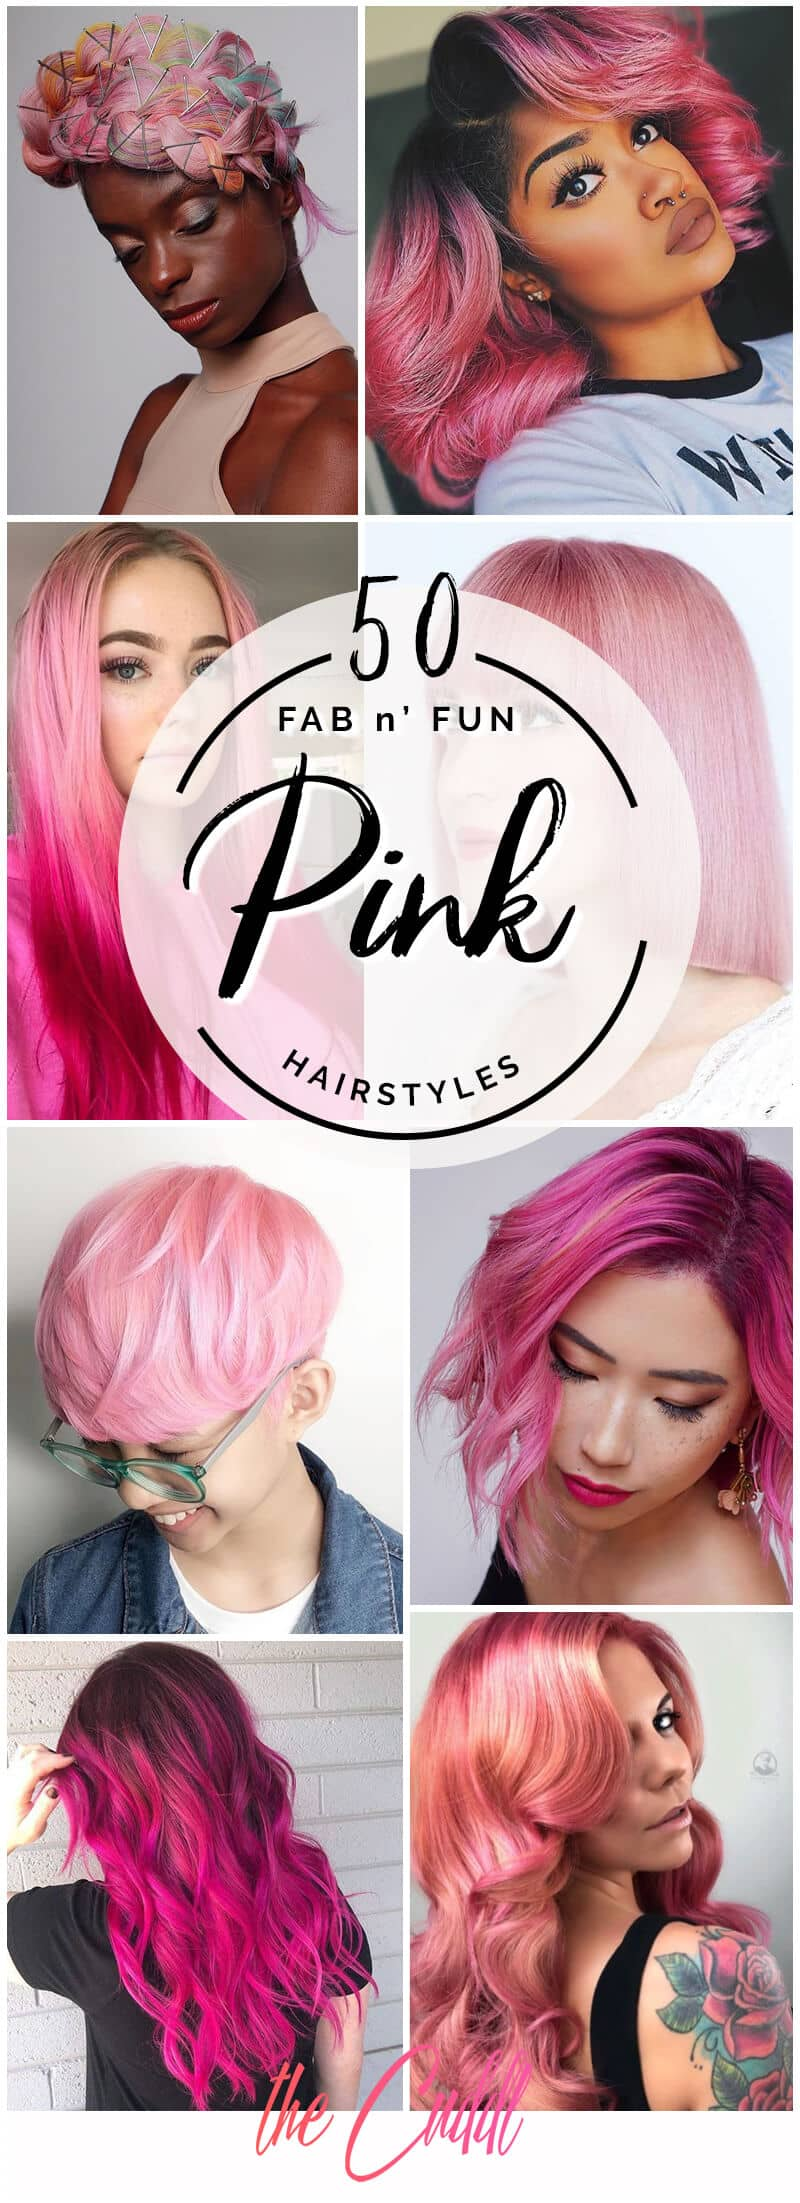 50 Pink Hair Styles to Pep Up Your Look